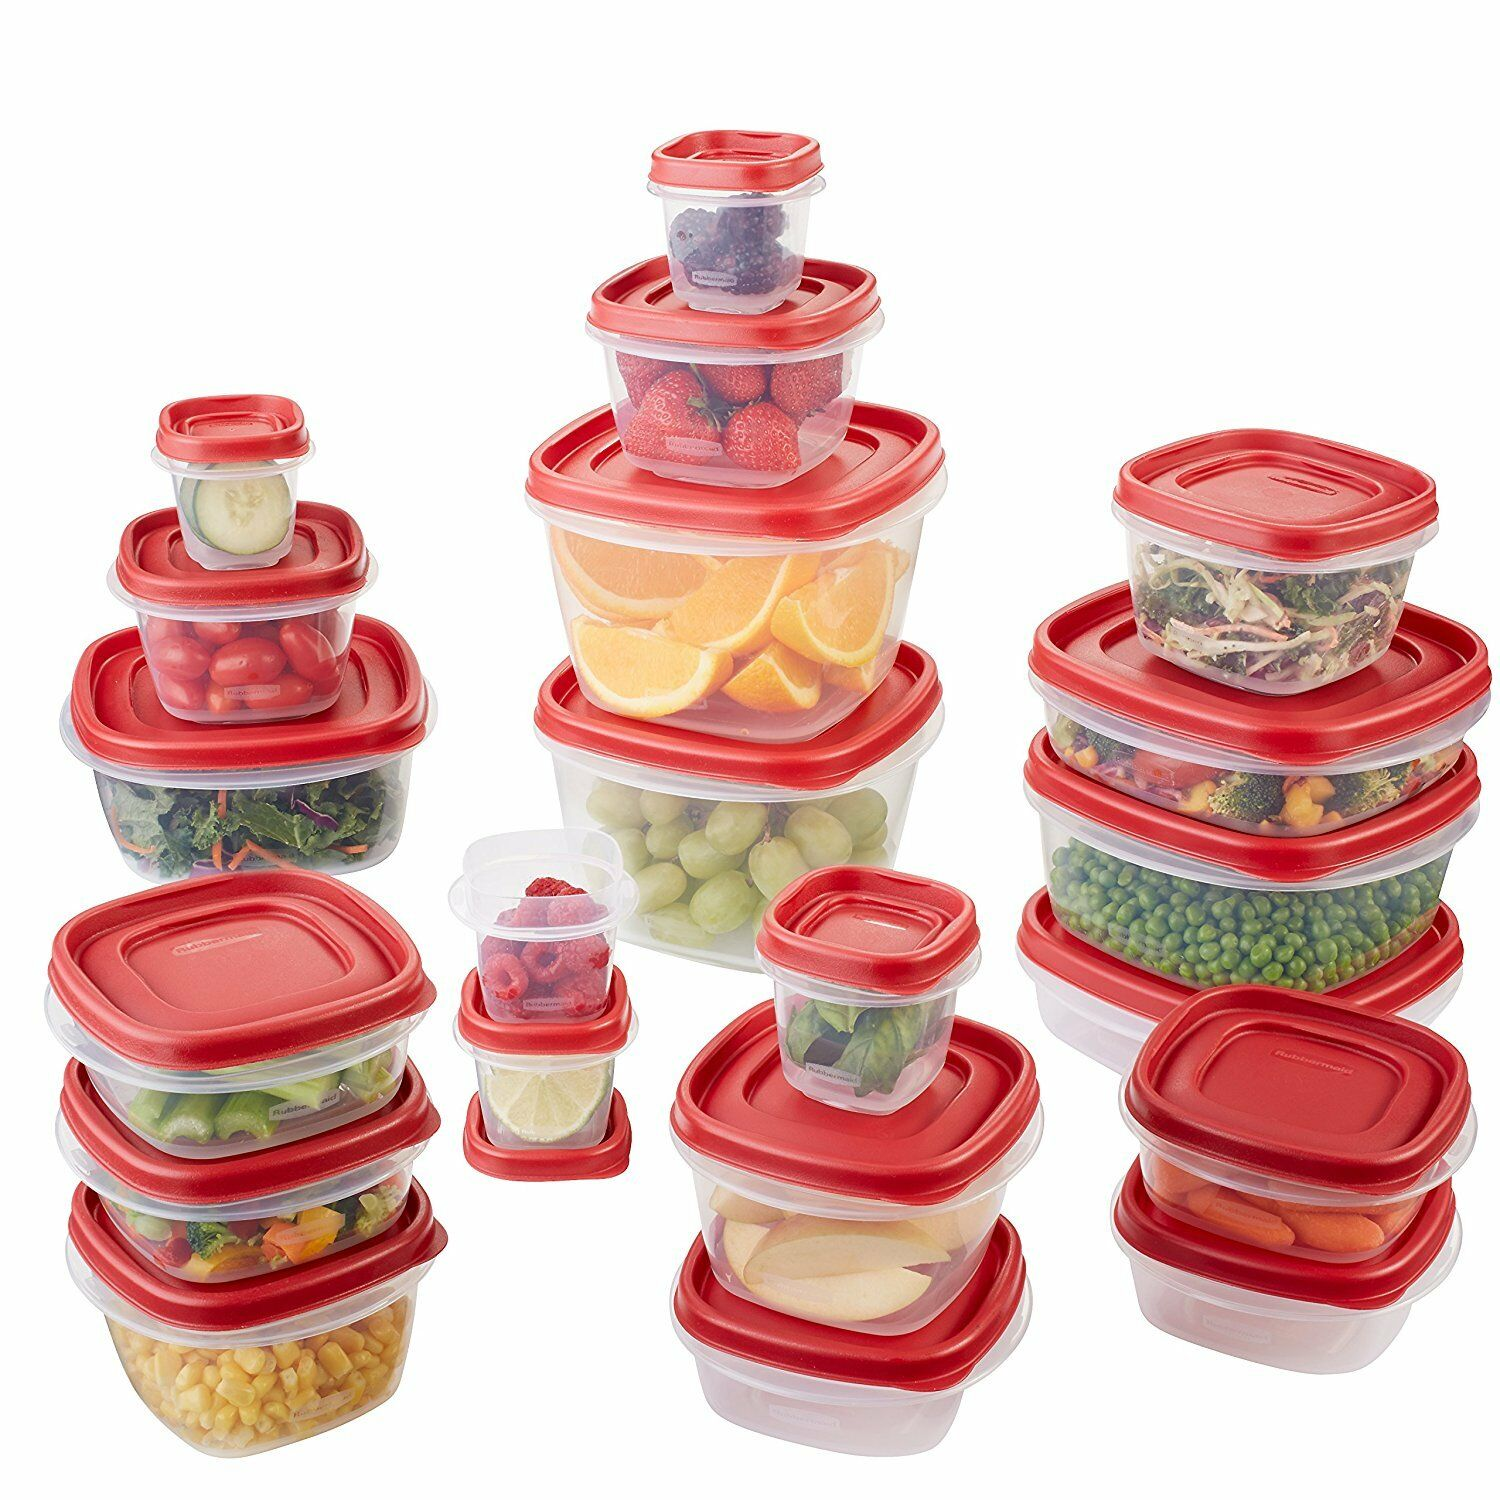 NEW RUBBERMAID EASY FIND LIDS FOOD STORAGE CONTAINER 42 42 42 PIECE SET rot 1880801 09be48